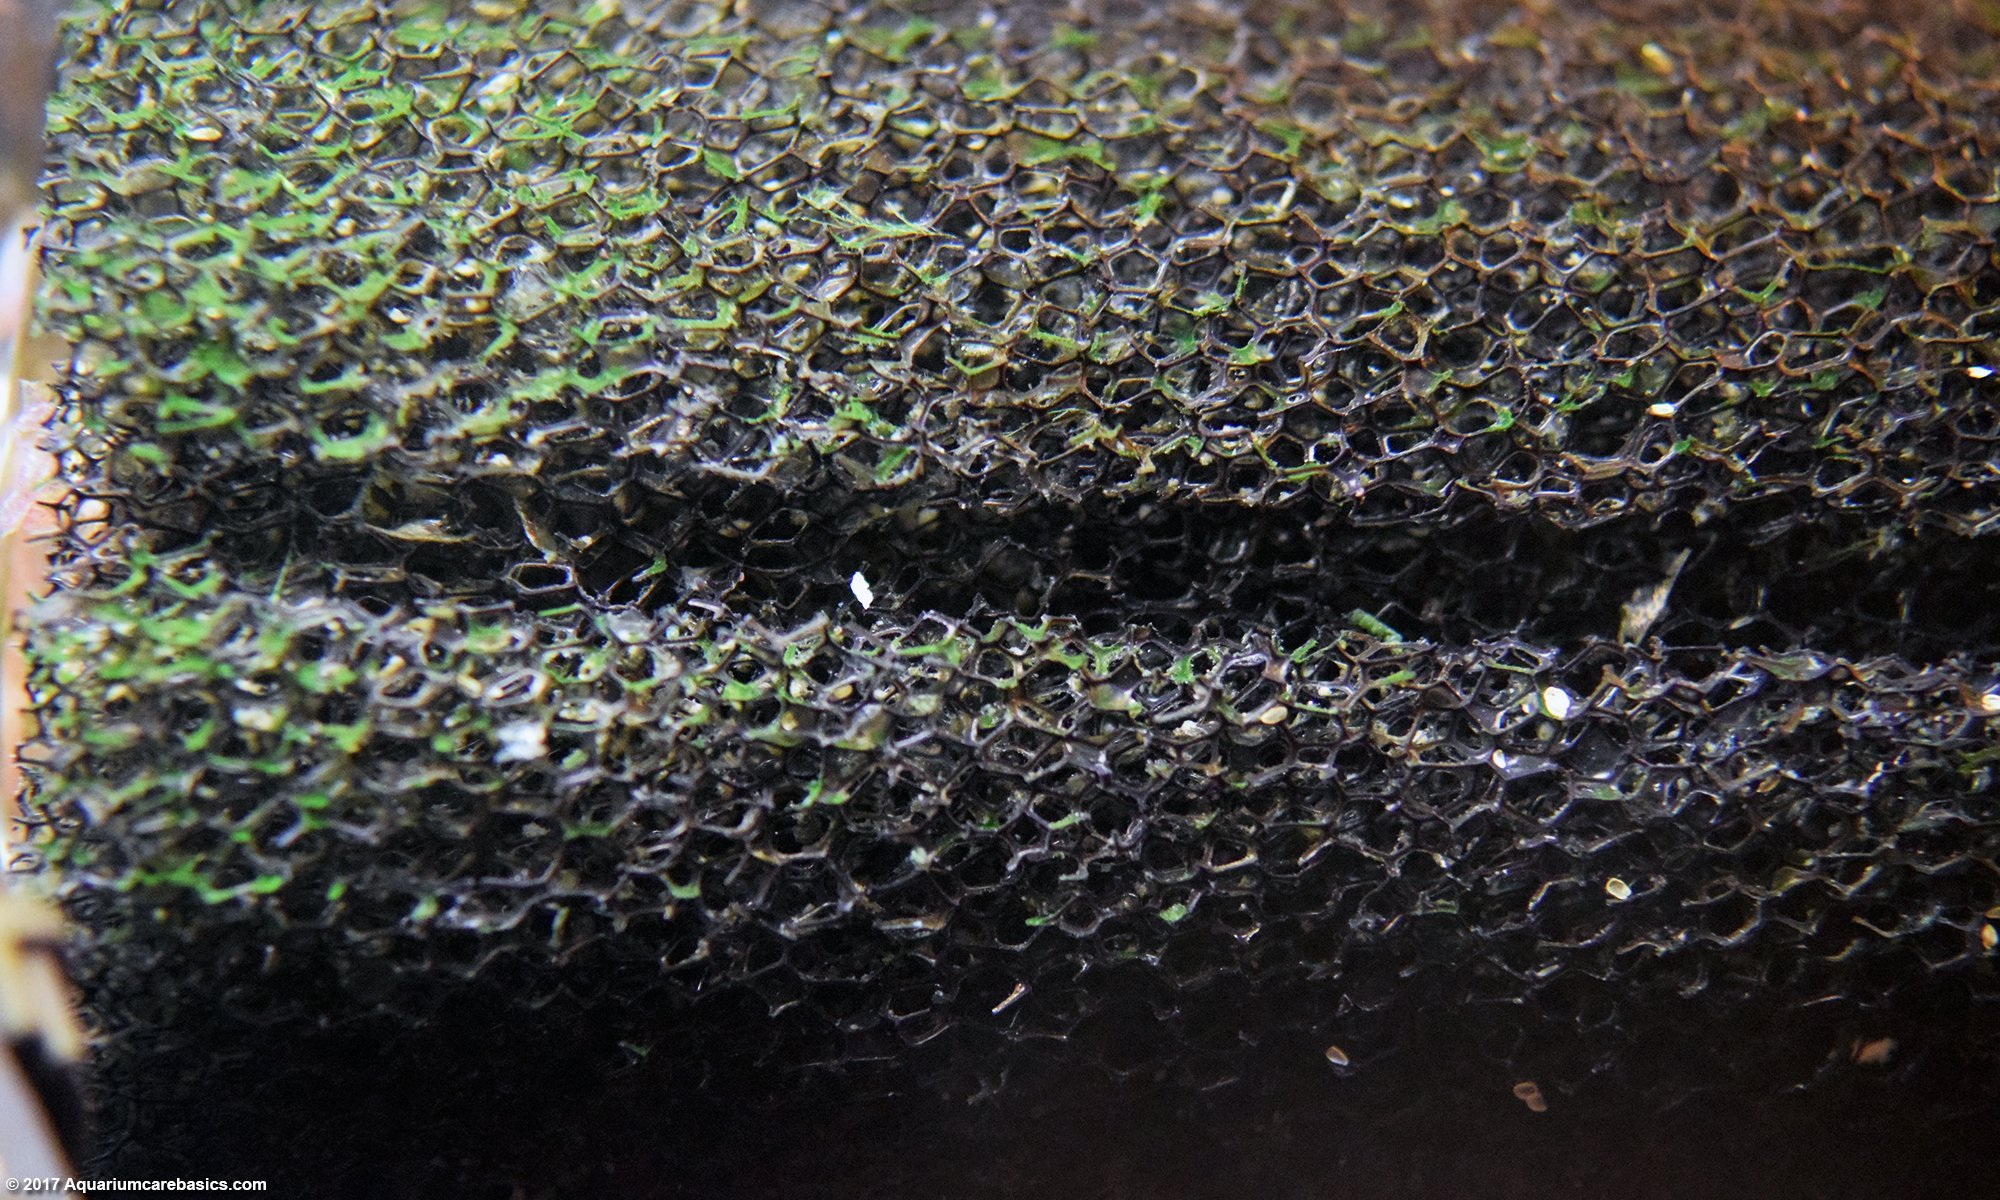 Sponge Filter Closeup, Adds Lots of Surface Area For Nitrifying Bacteria